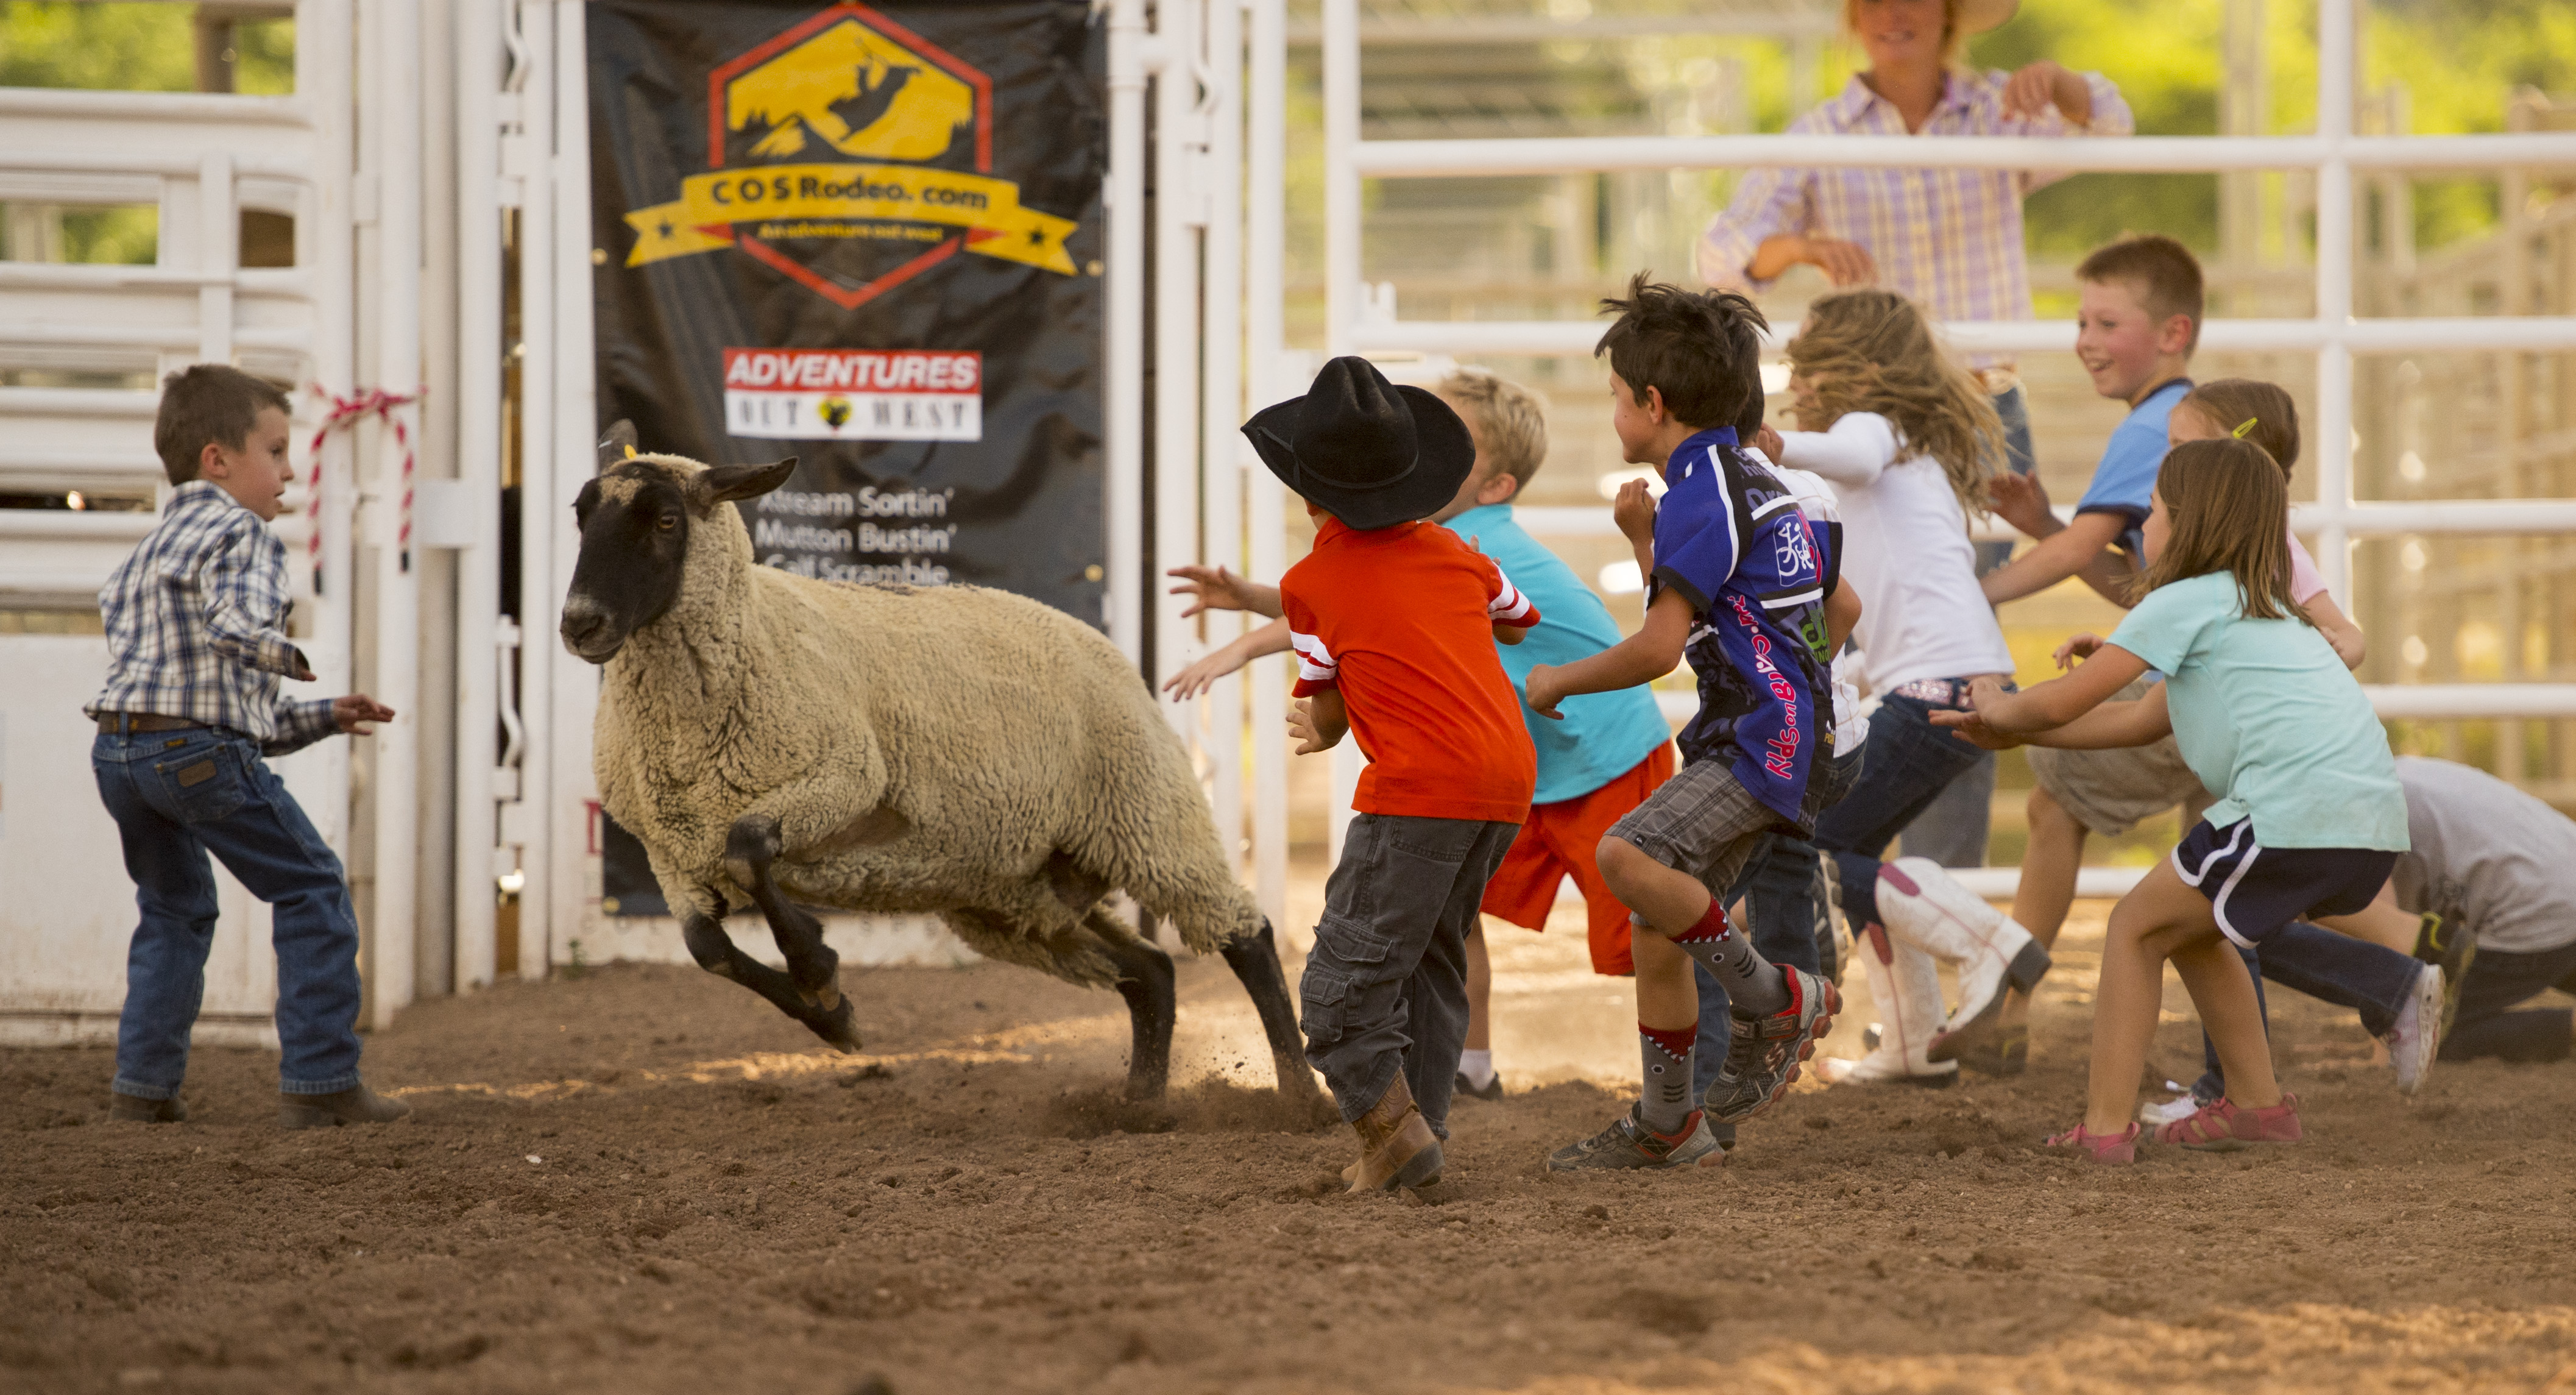 "Kids chase a loose sheep during a ""Mutton Scramble"" at the fourth COS Rodeo of the summer Wednesday, July 6, 2016 at the Norris-Penrose Event Center. The event resumes for four consecutive Wednesday nights at 5pm beginning July 27th. Tickets art $34 and include dinner, rodeo and a concert. Visitors can even participate in certain selected events. Photo by Mark Reis, The Gazette"